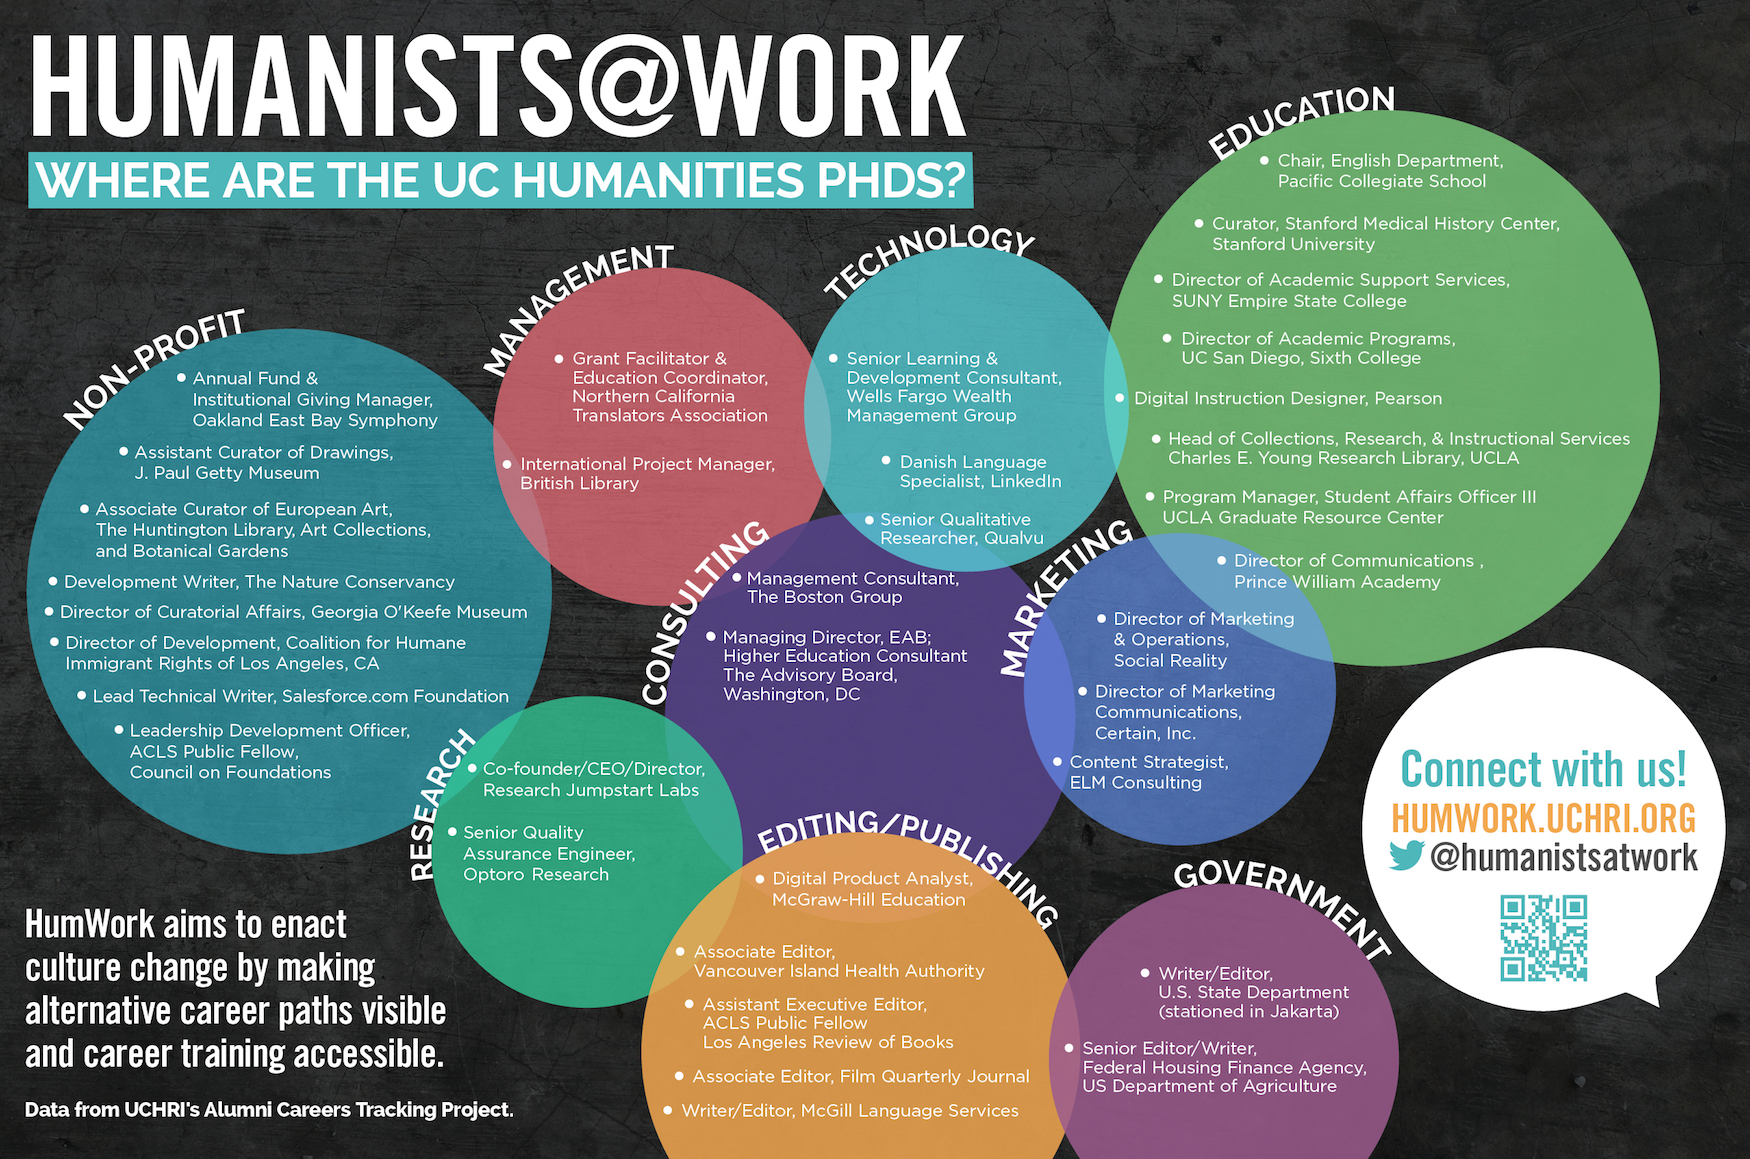 Humanists@Work: Where are the UC Humanities PhDs?